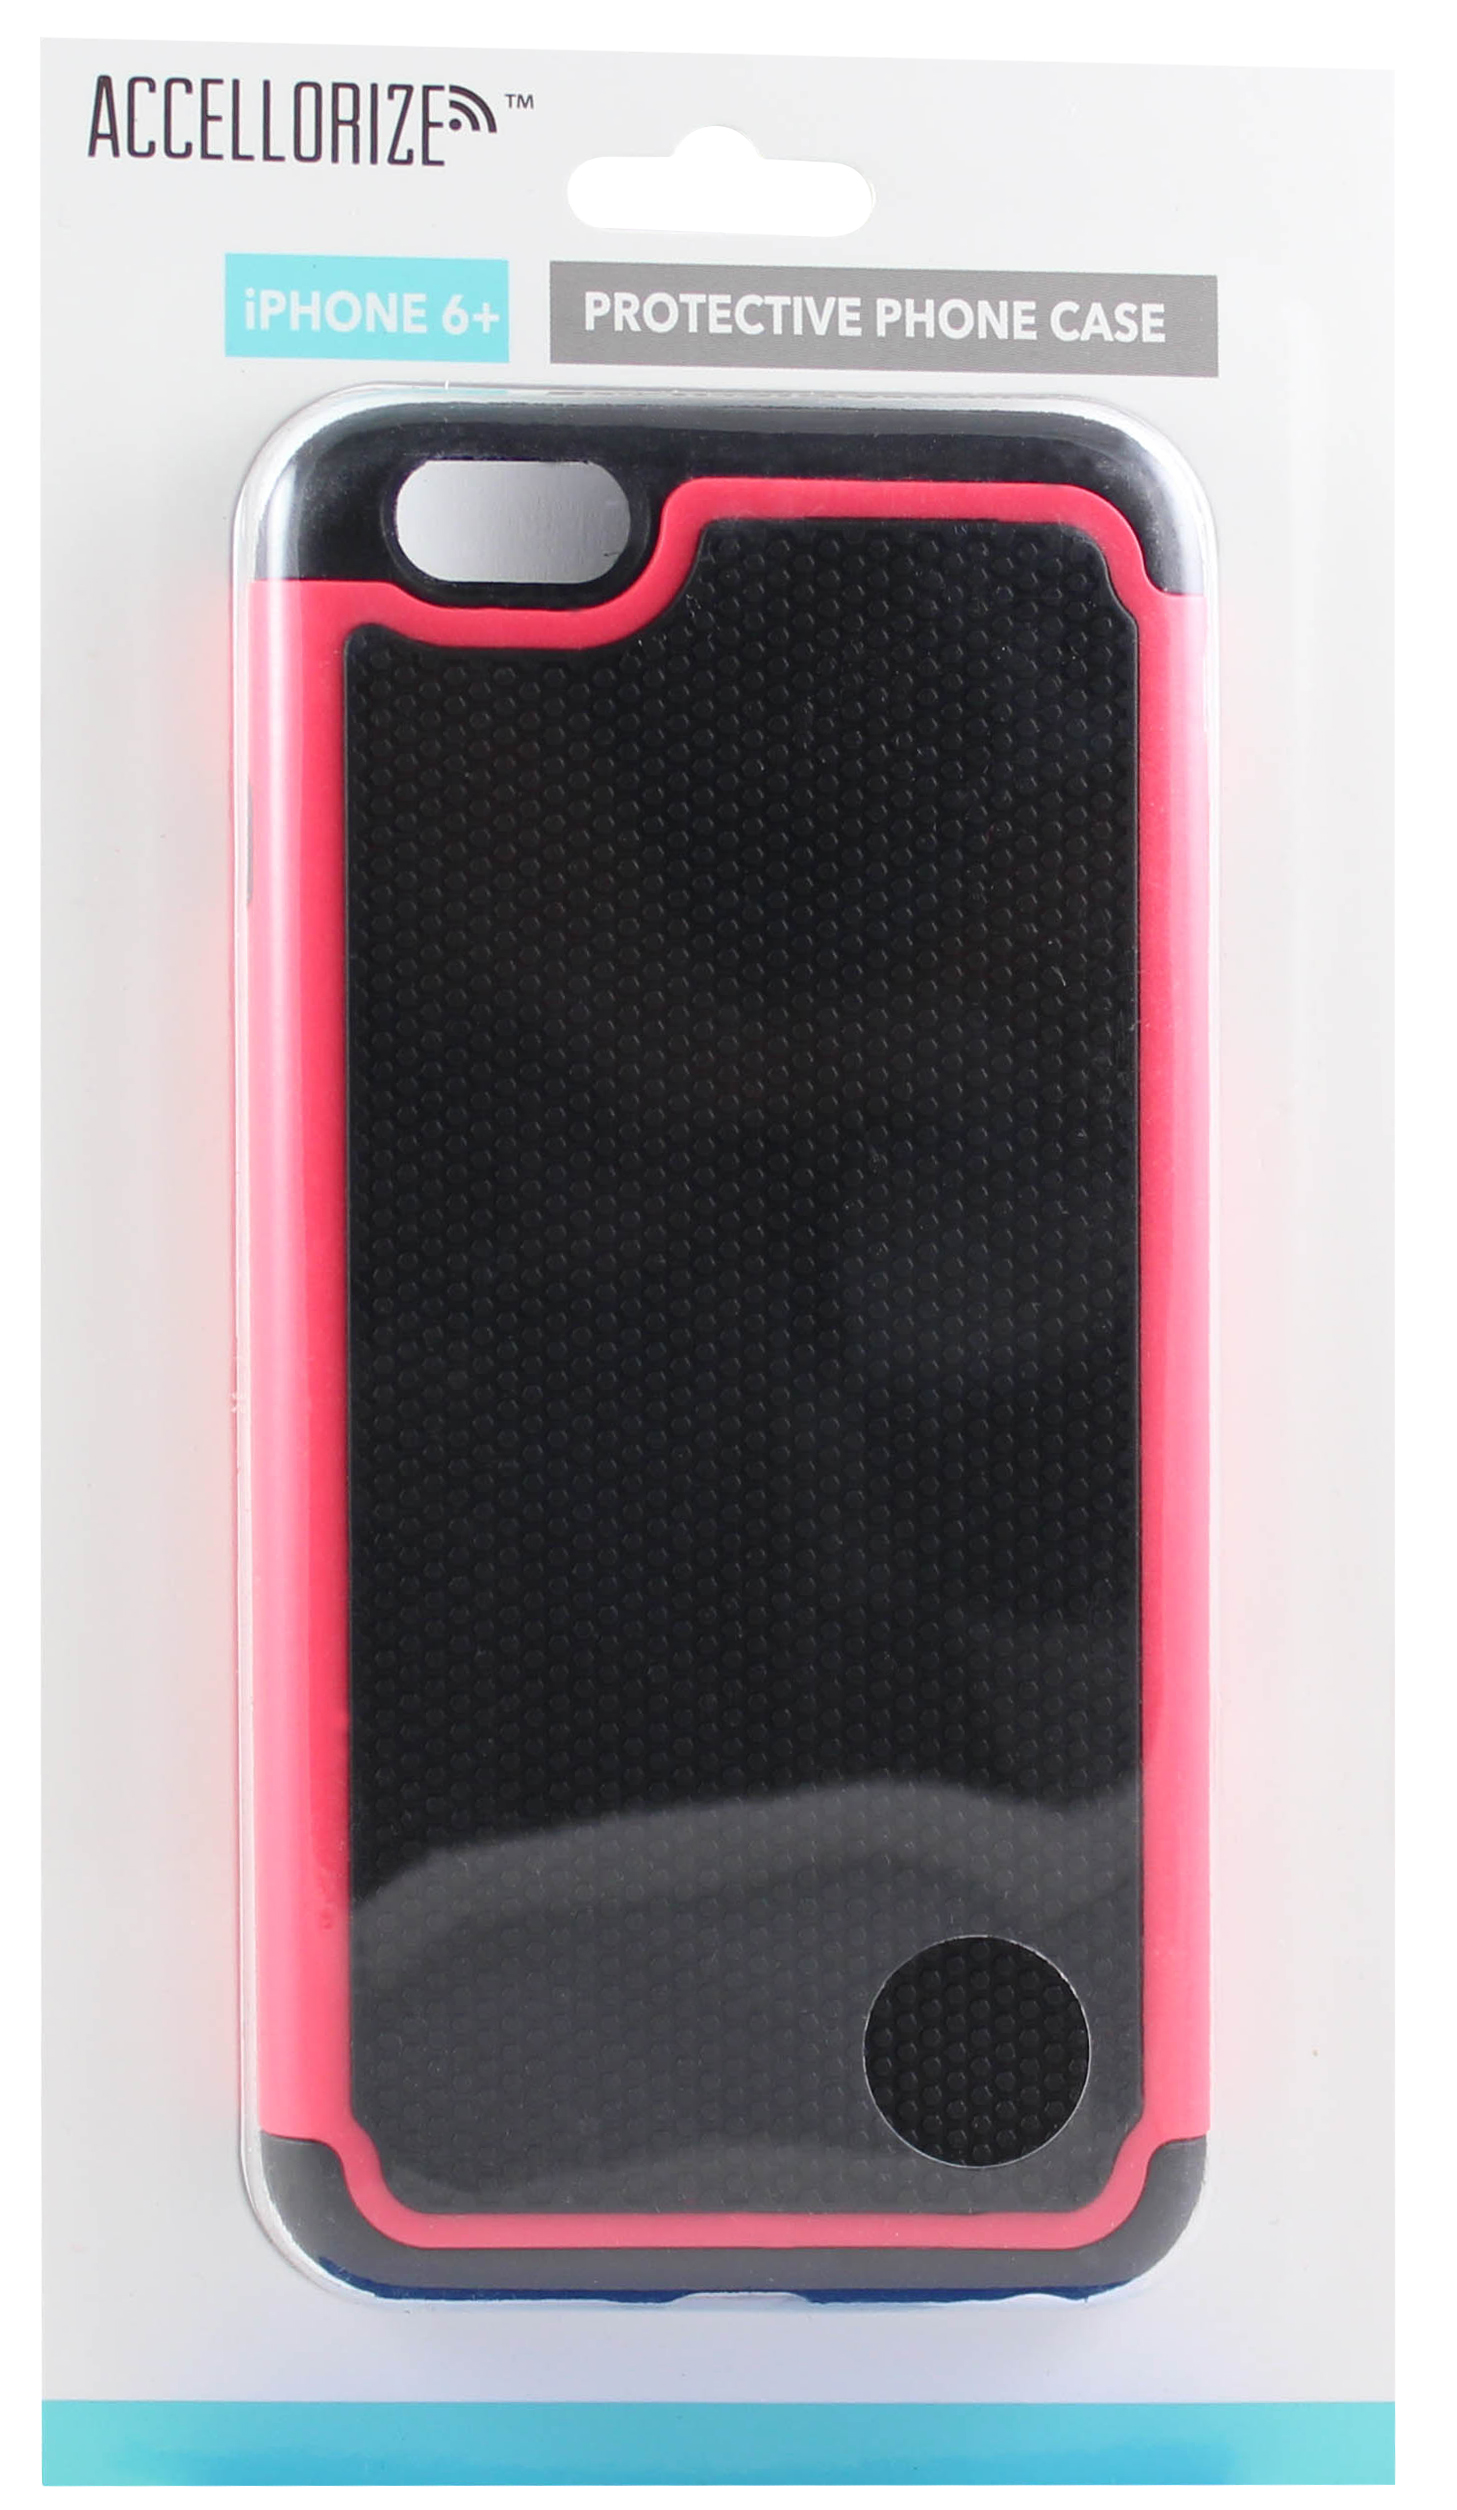 ACCELLORIZE 35014 BLACK & PINK PROTECTIVE CASE FOR IPHONE 6